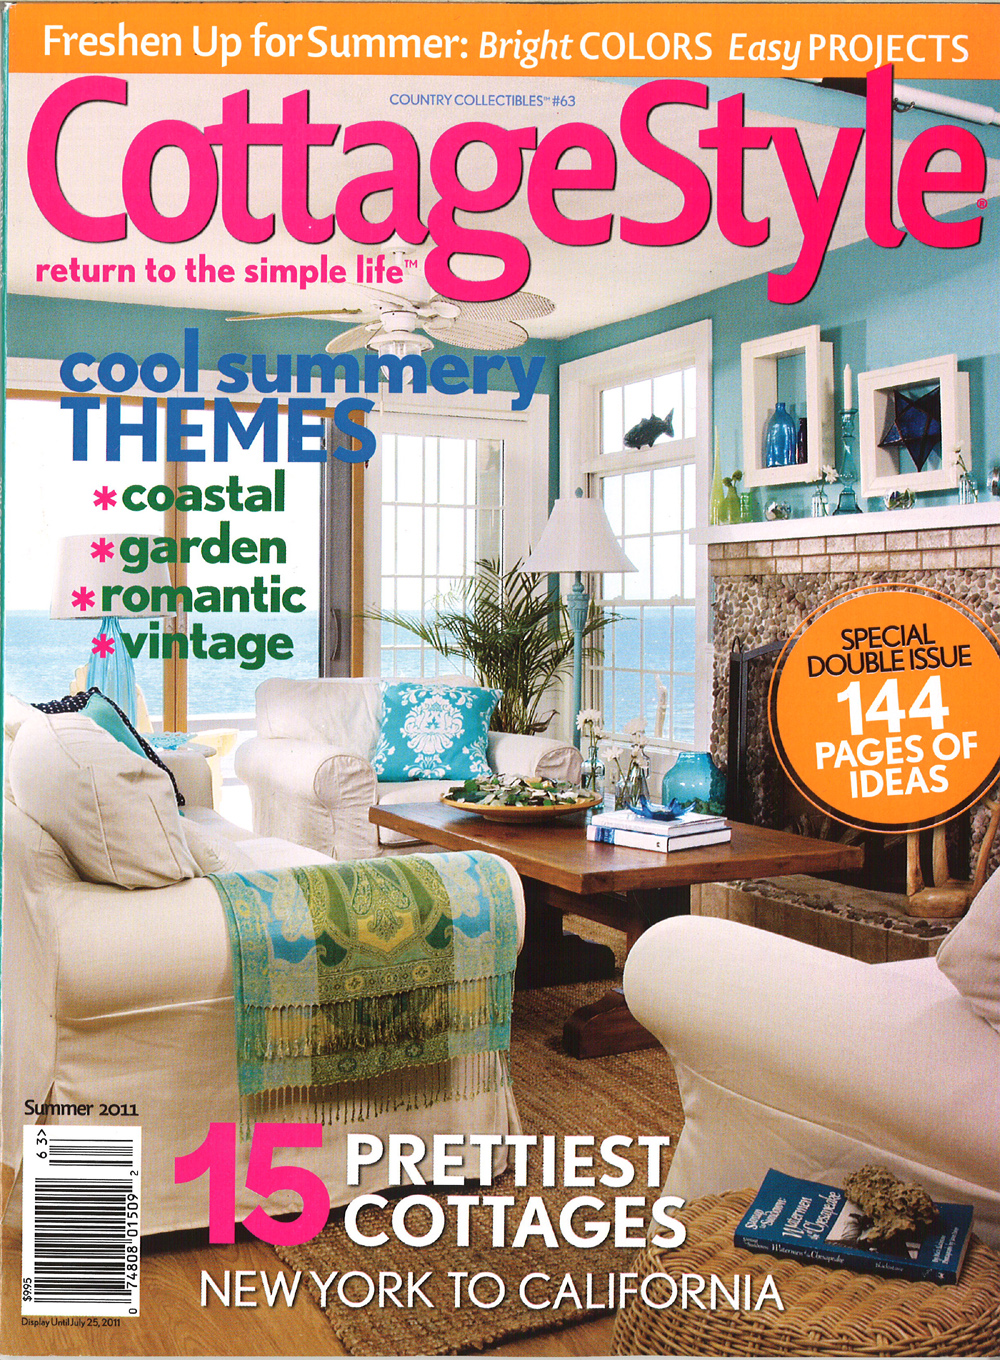 Home and cottage magazine as featured in cottage magazine Home and cottage magazine